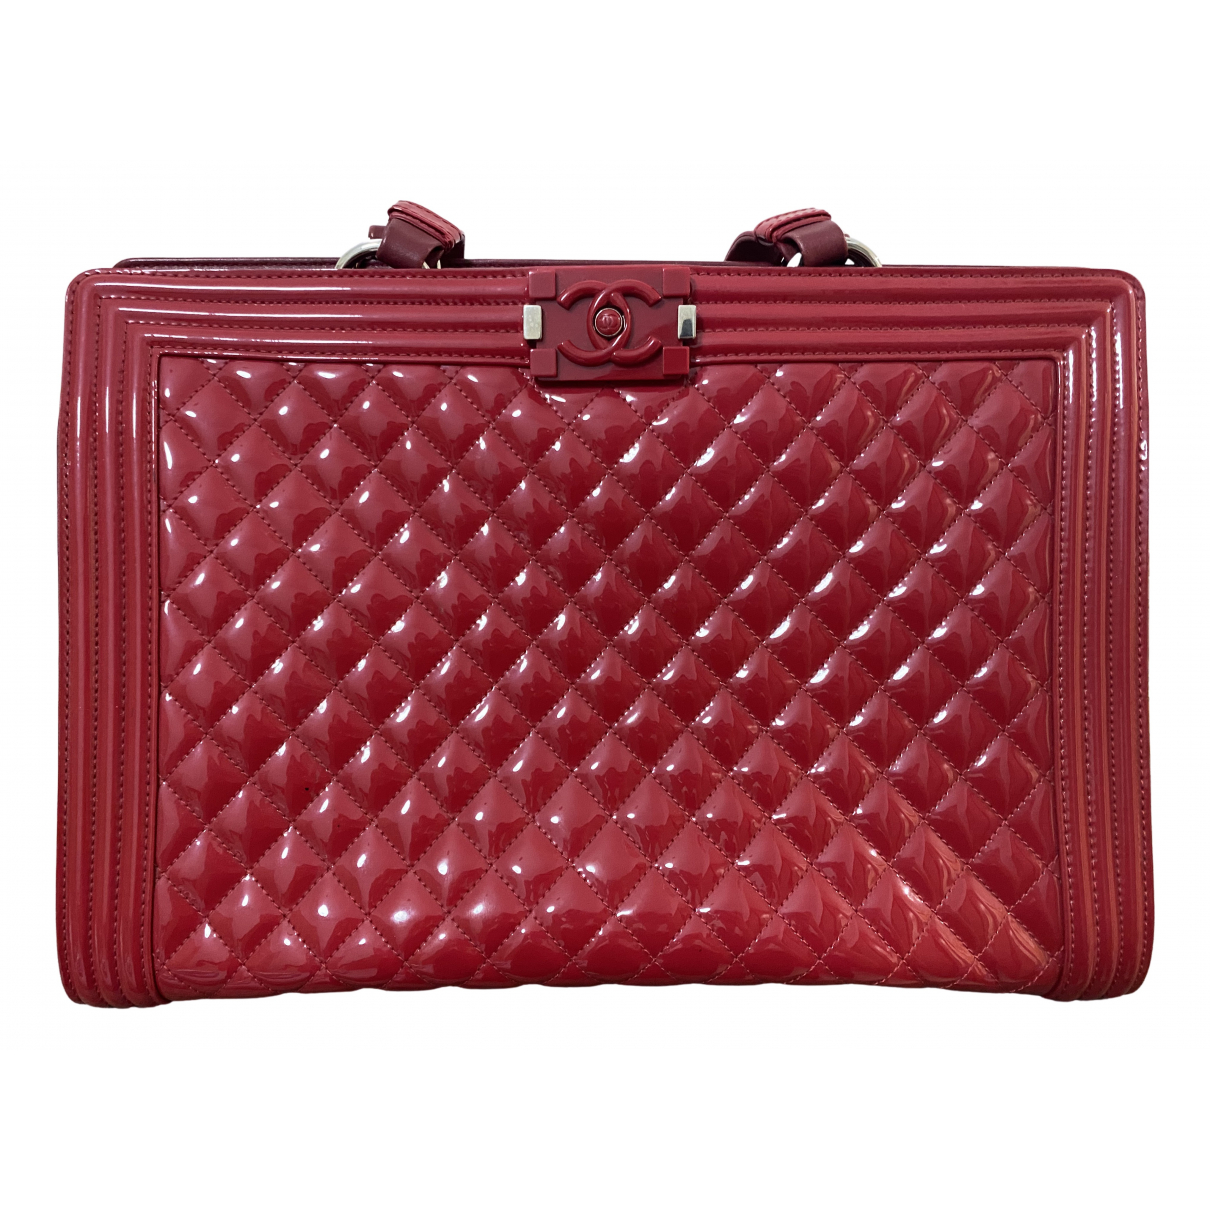 Chanel Boy Tote  Red Leather handbag for Women N